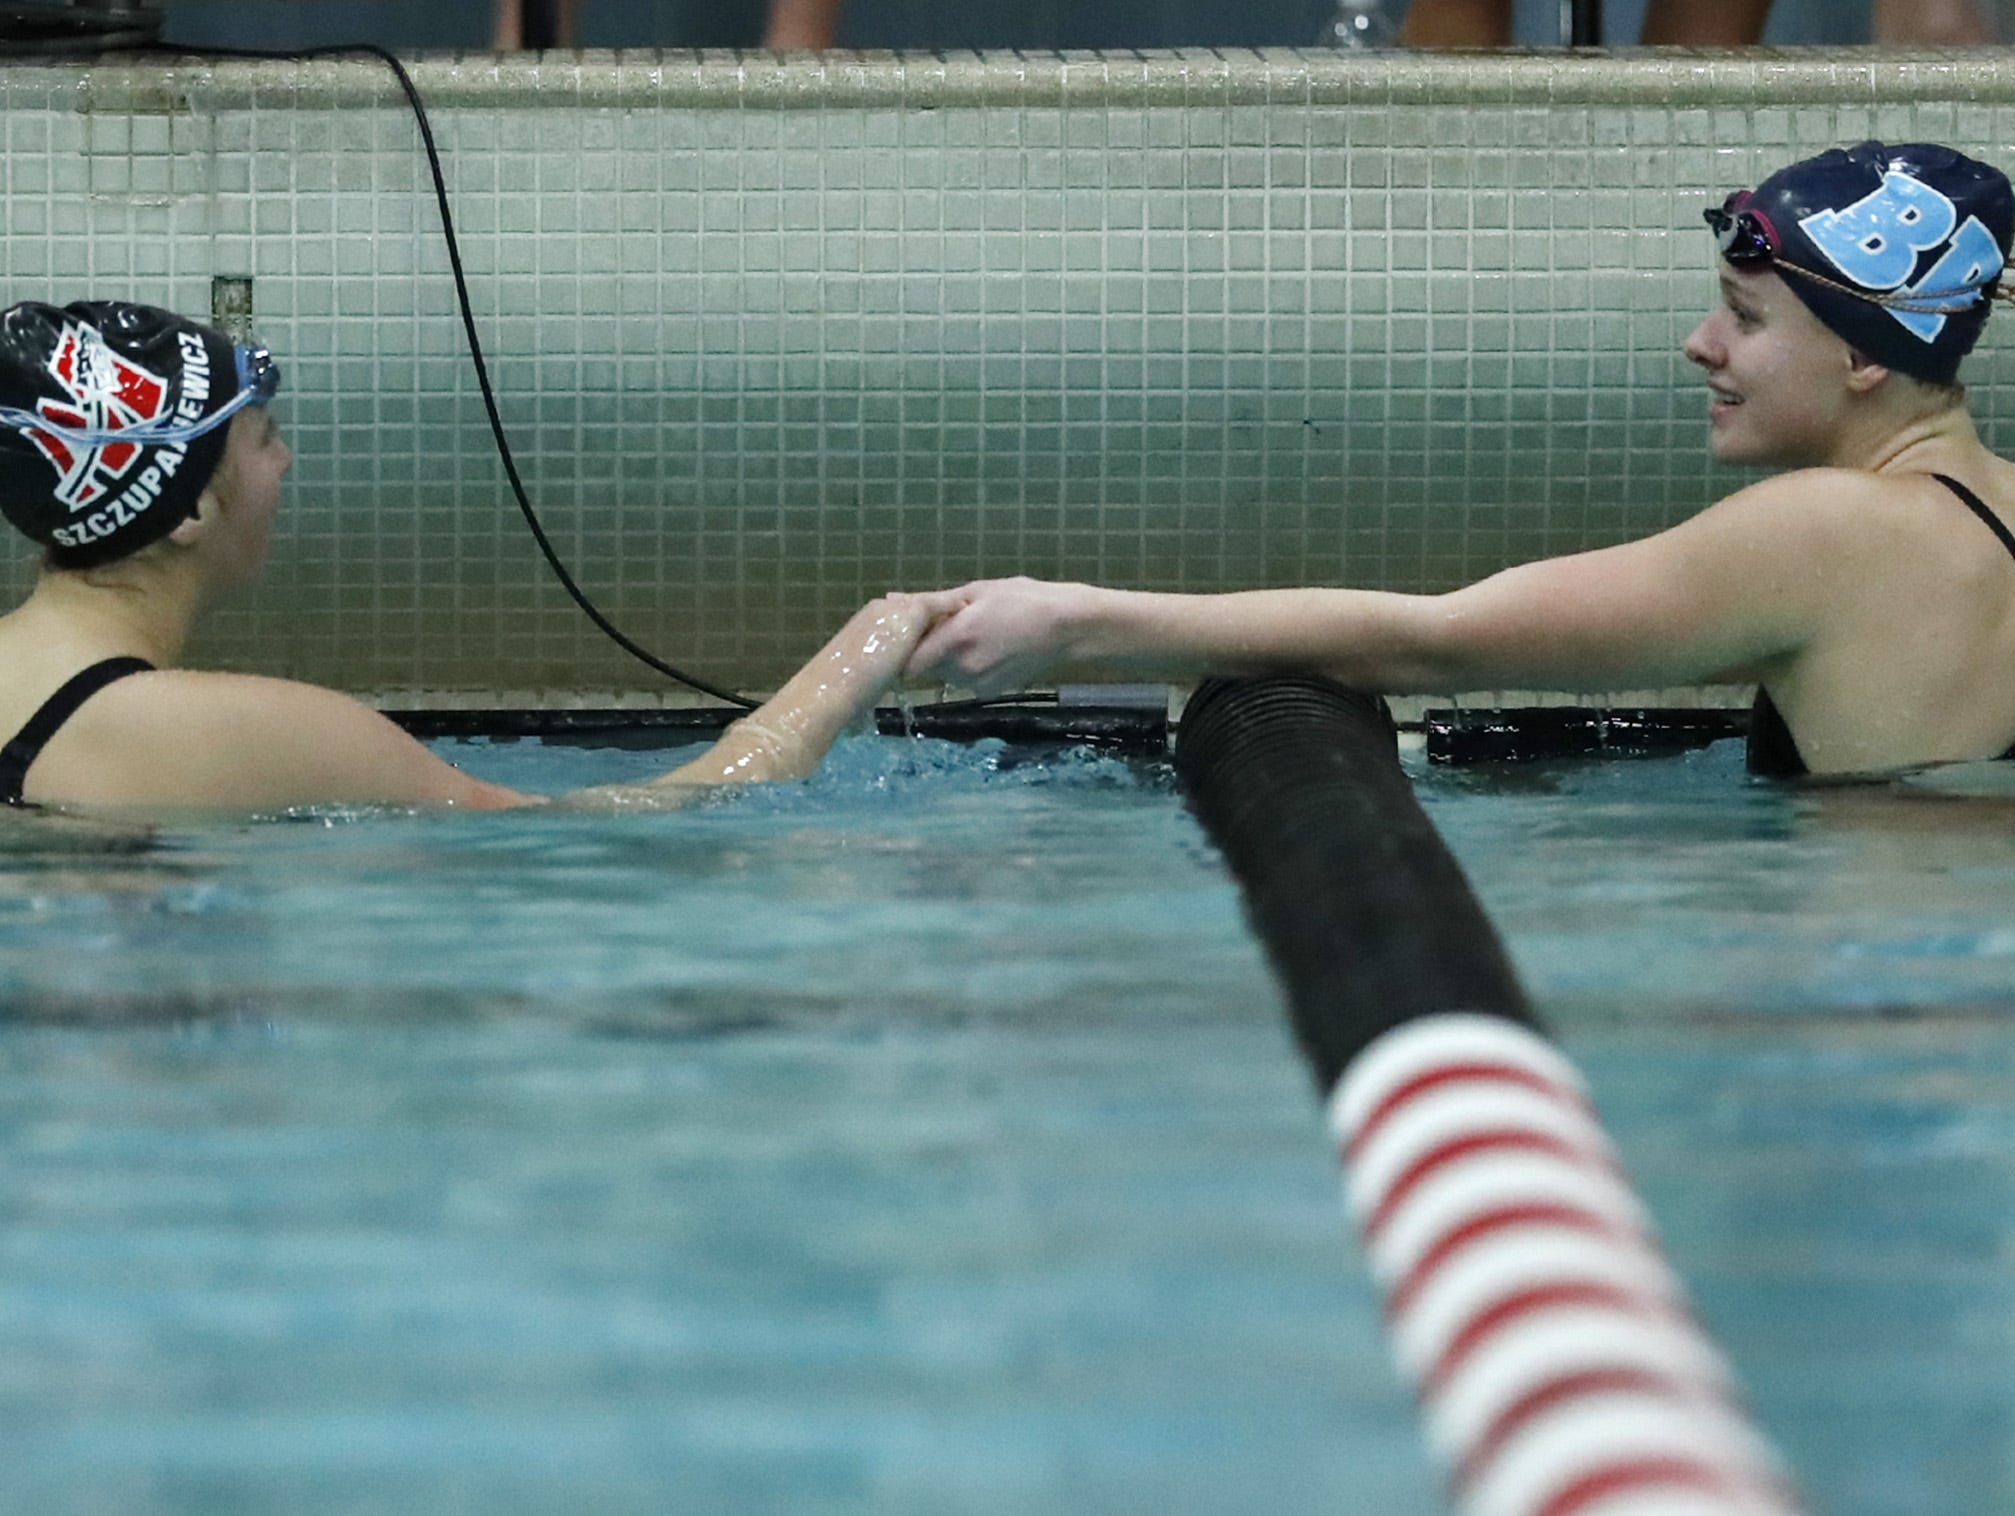 Muskego's Erin Szczupakiewicz shakes hands with Bay PortÕs Emma Lasecki after the 100 yard butterfly during the WIAA Division 1 State Swimming and Diving meet Saturday, Nov. 10, 2018, at the UW Natatorium in Madison, Wis. Danny Damiani/USA TODAY NETWORK-Wisconsin